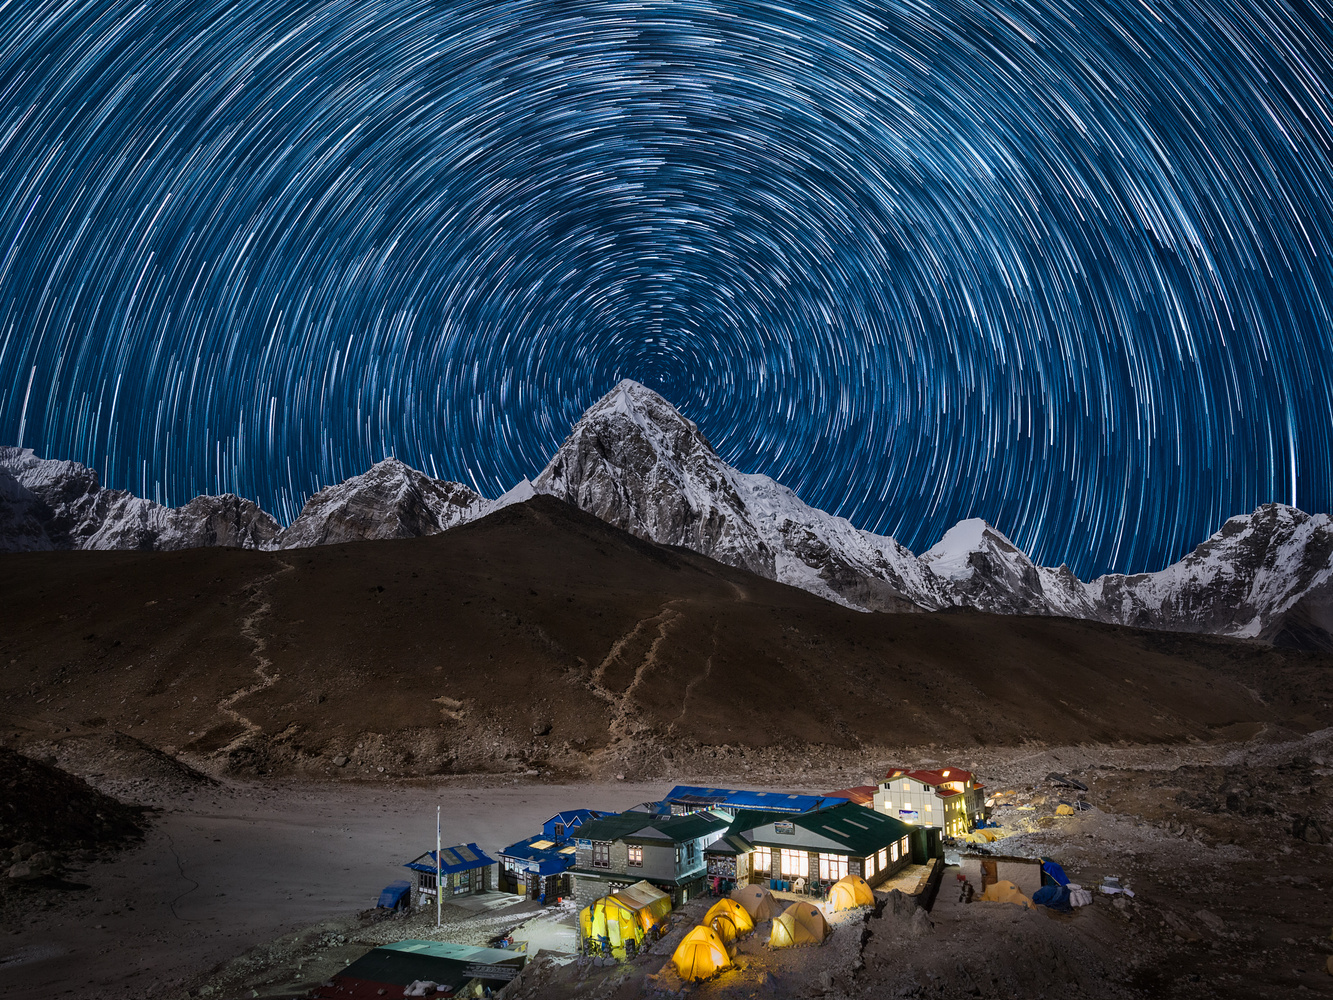 Star trail in front of Kalapathar and Pumori moutain by Thomas Andlauer